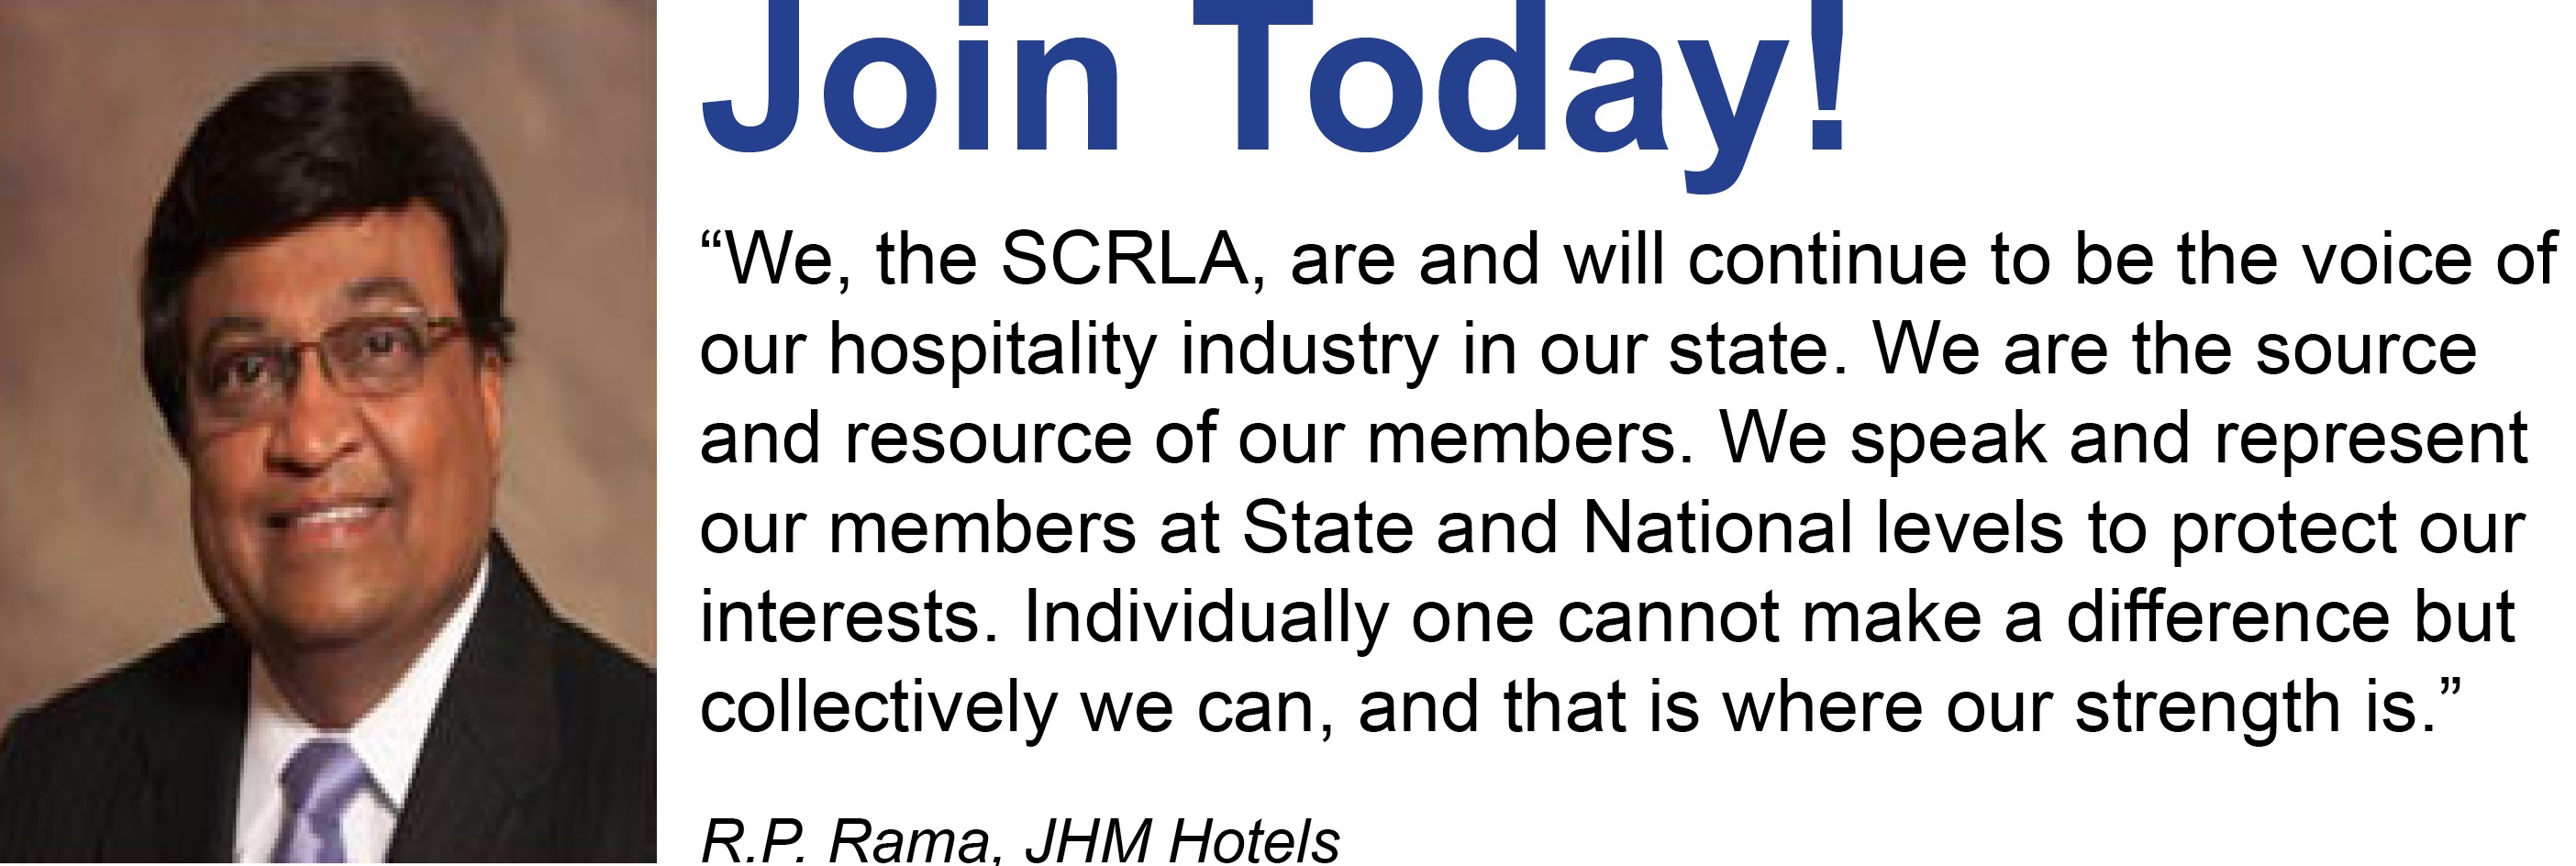 Join Today - RP Rama Quote